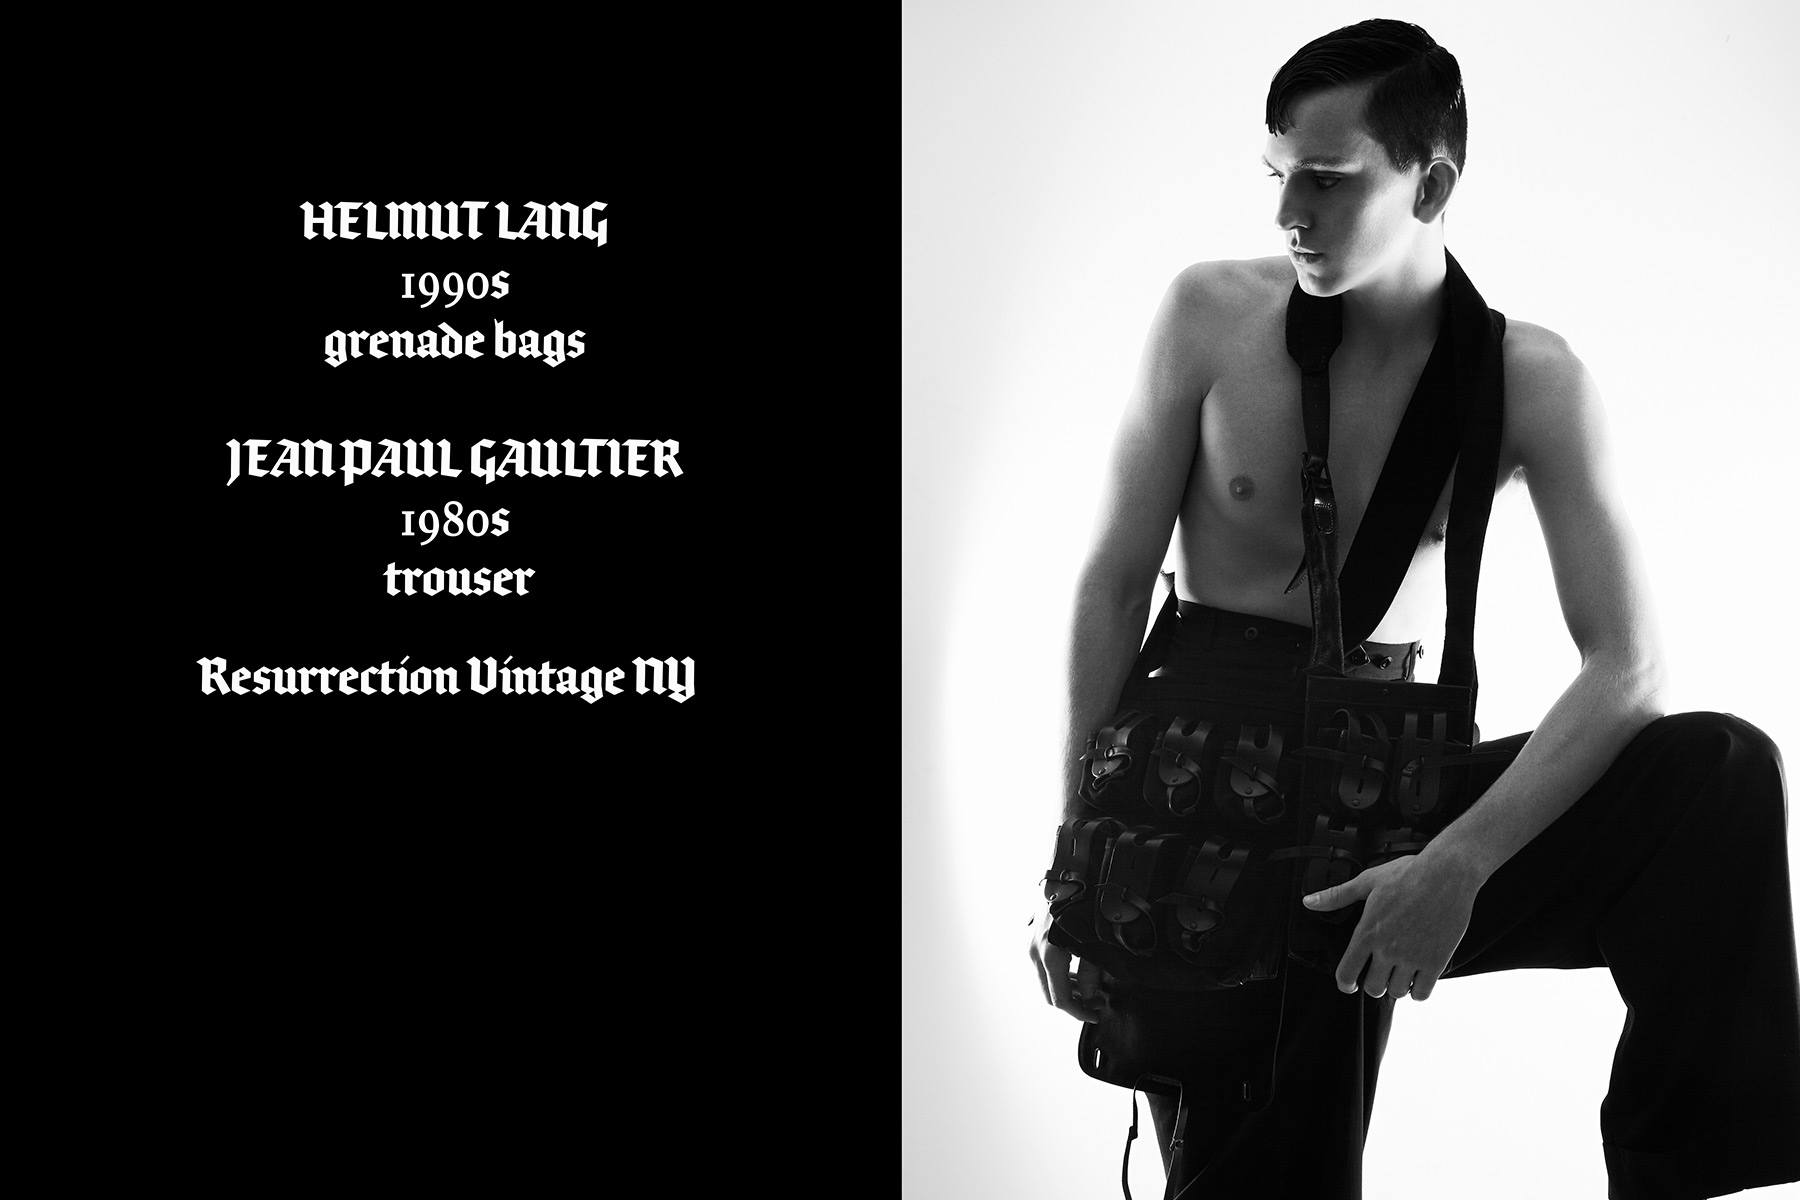 Model Brian Cunningham photographed with vintage Helmut Lang grenade bags by Alexander Thompson for Ponyboy magazine.